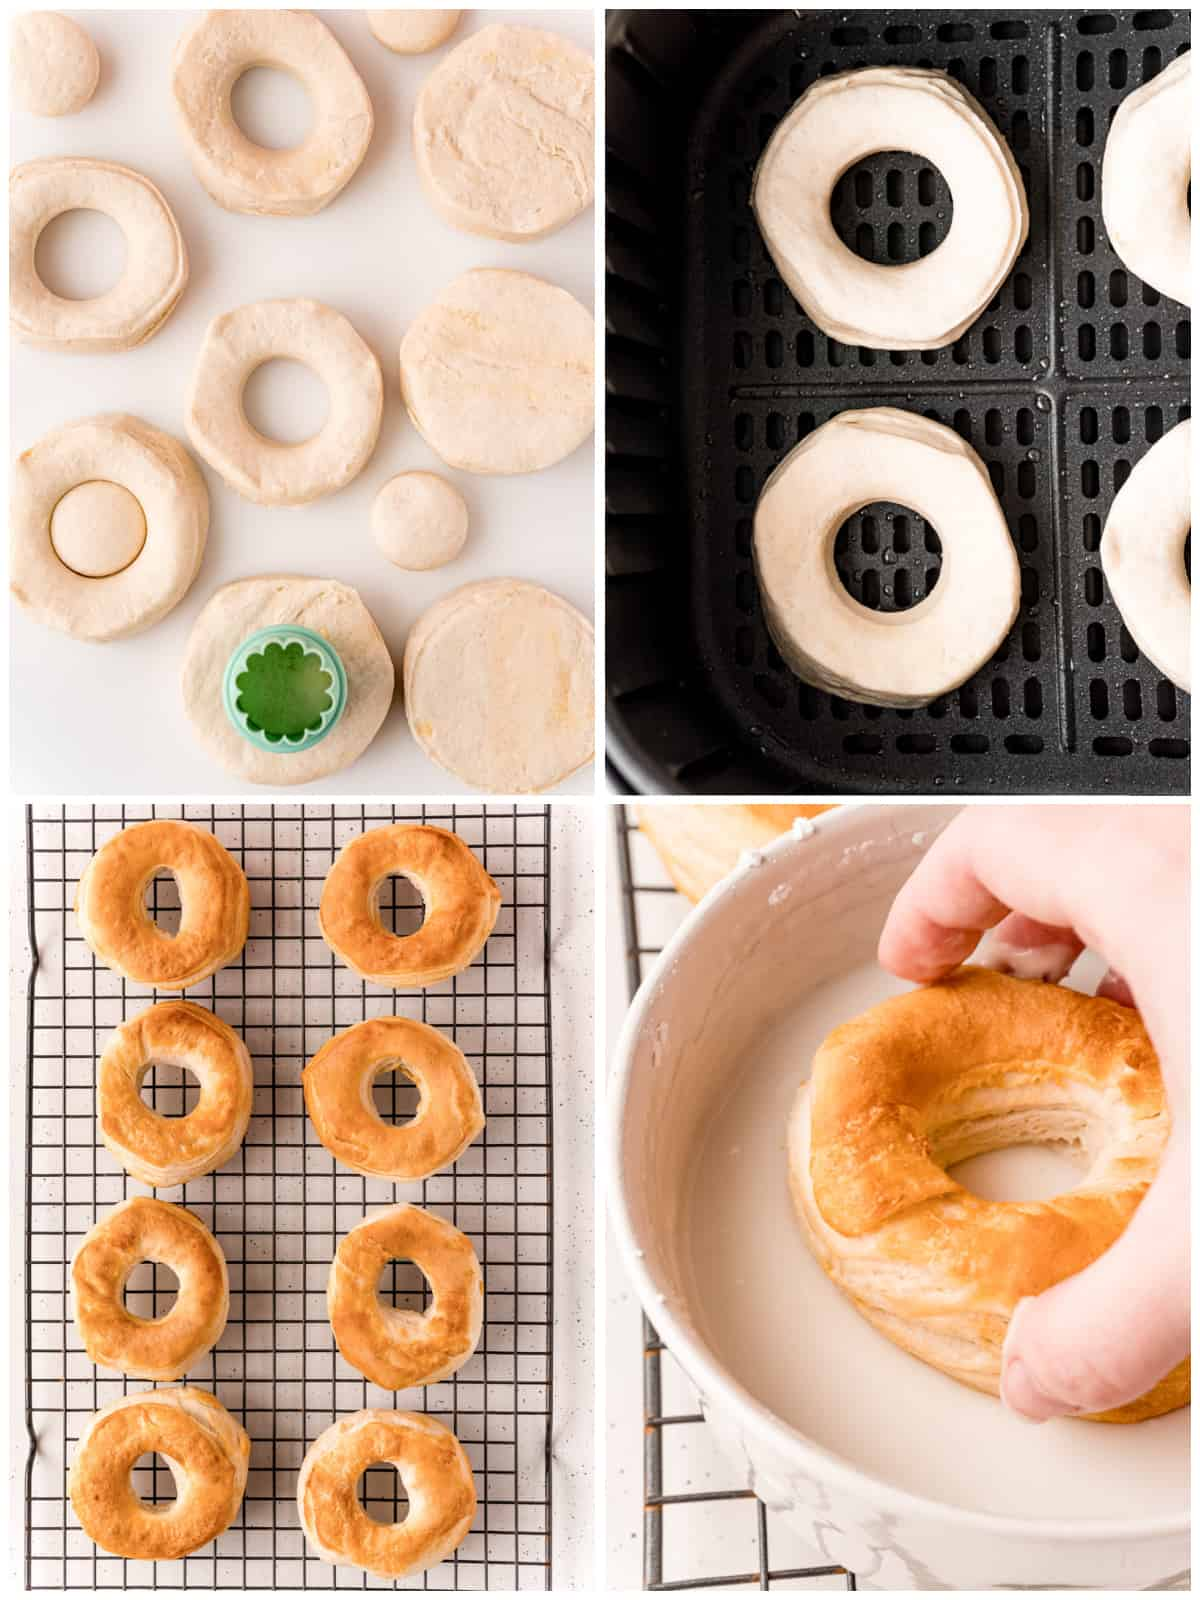 Step by step photos on how to make Air Fryer Donuts